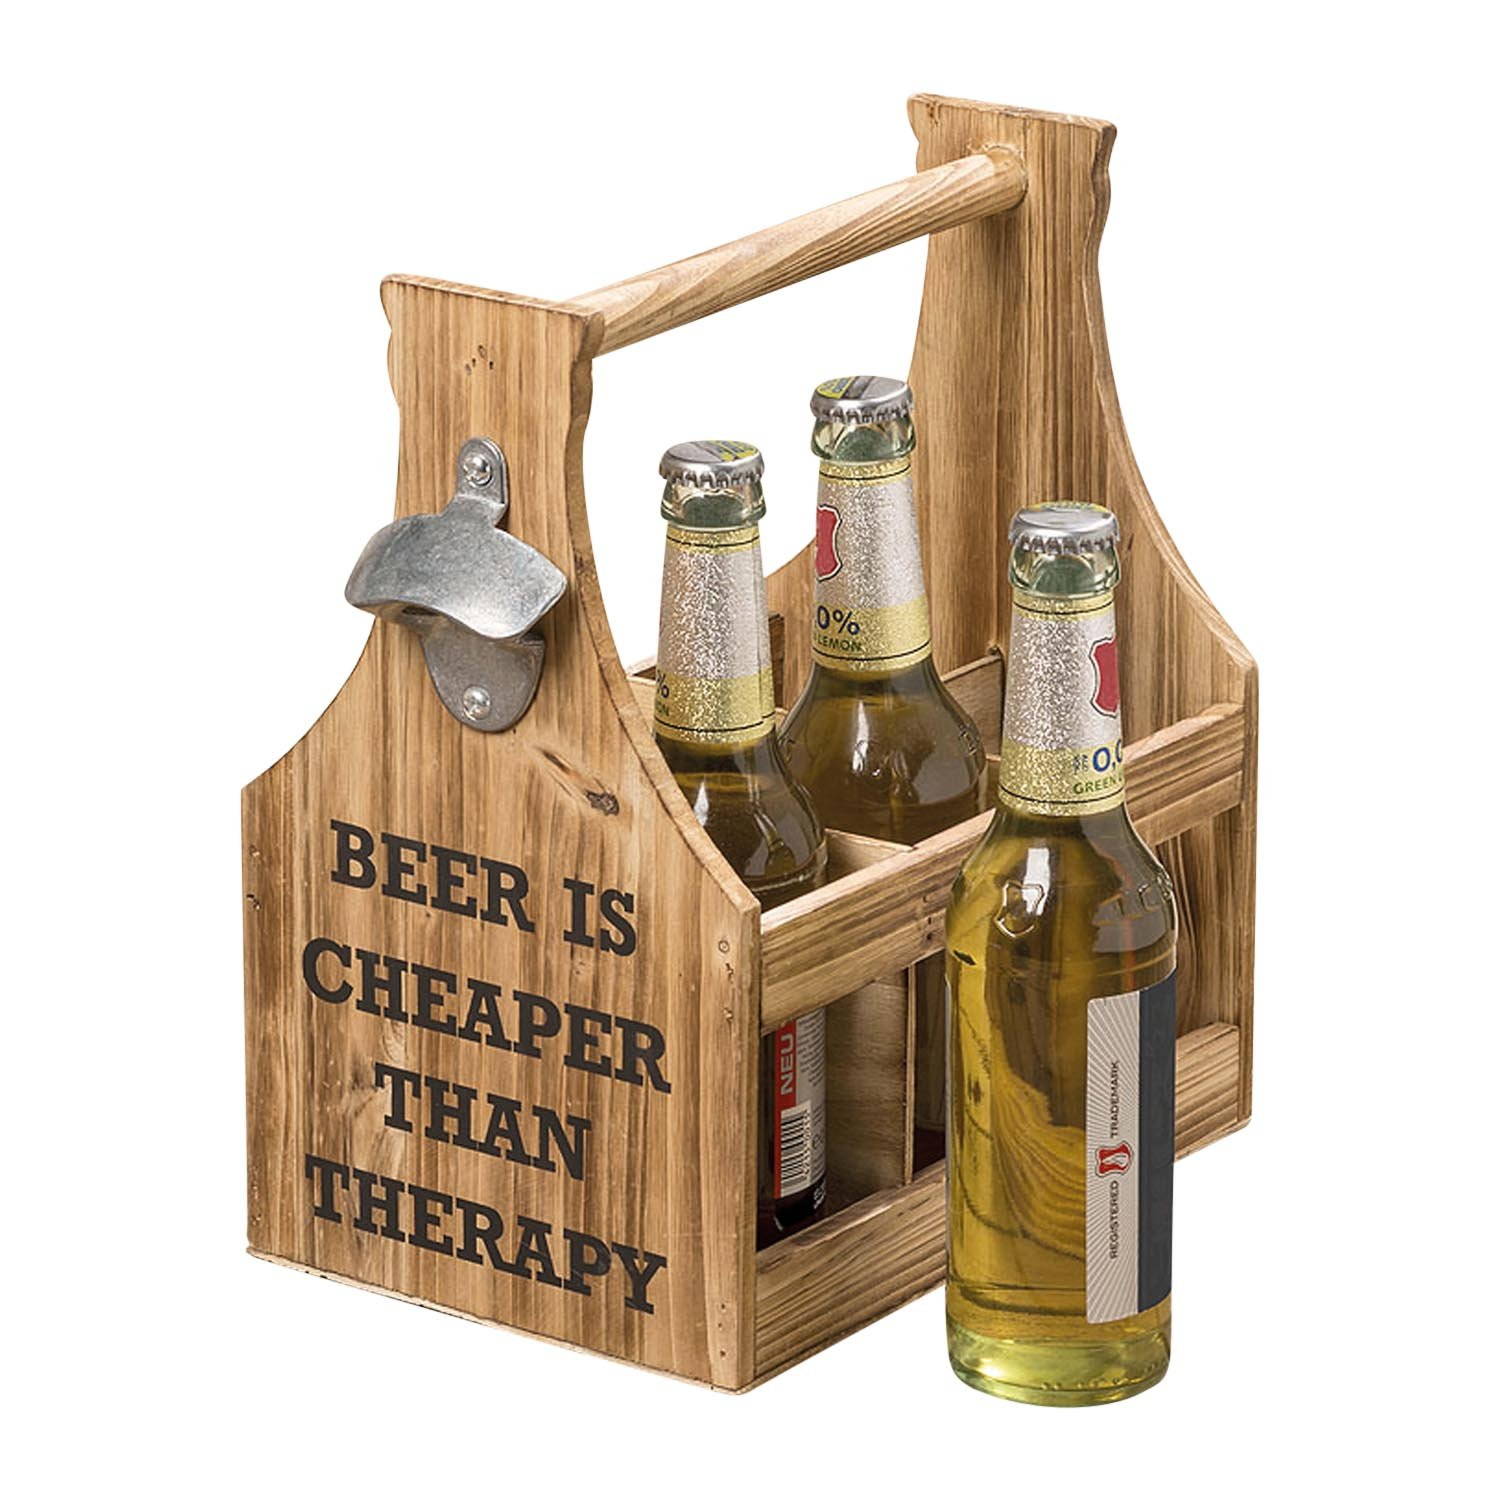 The Americana BEER IS CHEAPER THAN THERAPY, 6 Bottle Caddy Plus Bottle Opener, 6 Compartments, Carry Handle, Silo Style, Flat Panel Wood, Metal, 11 L x 6 3/4 W x 11 3/8T